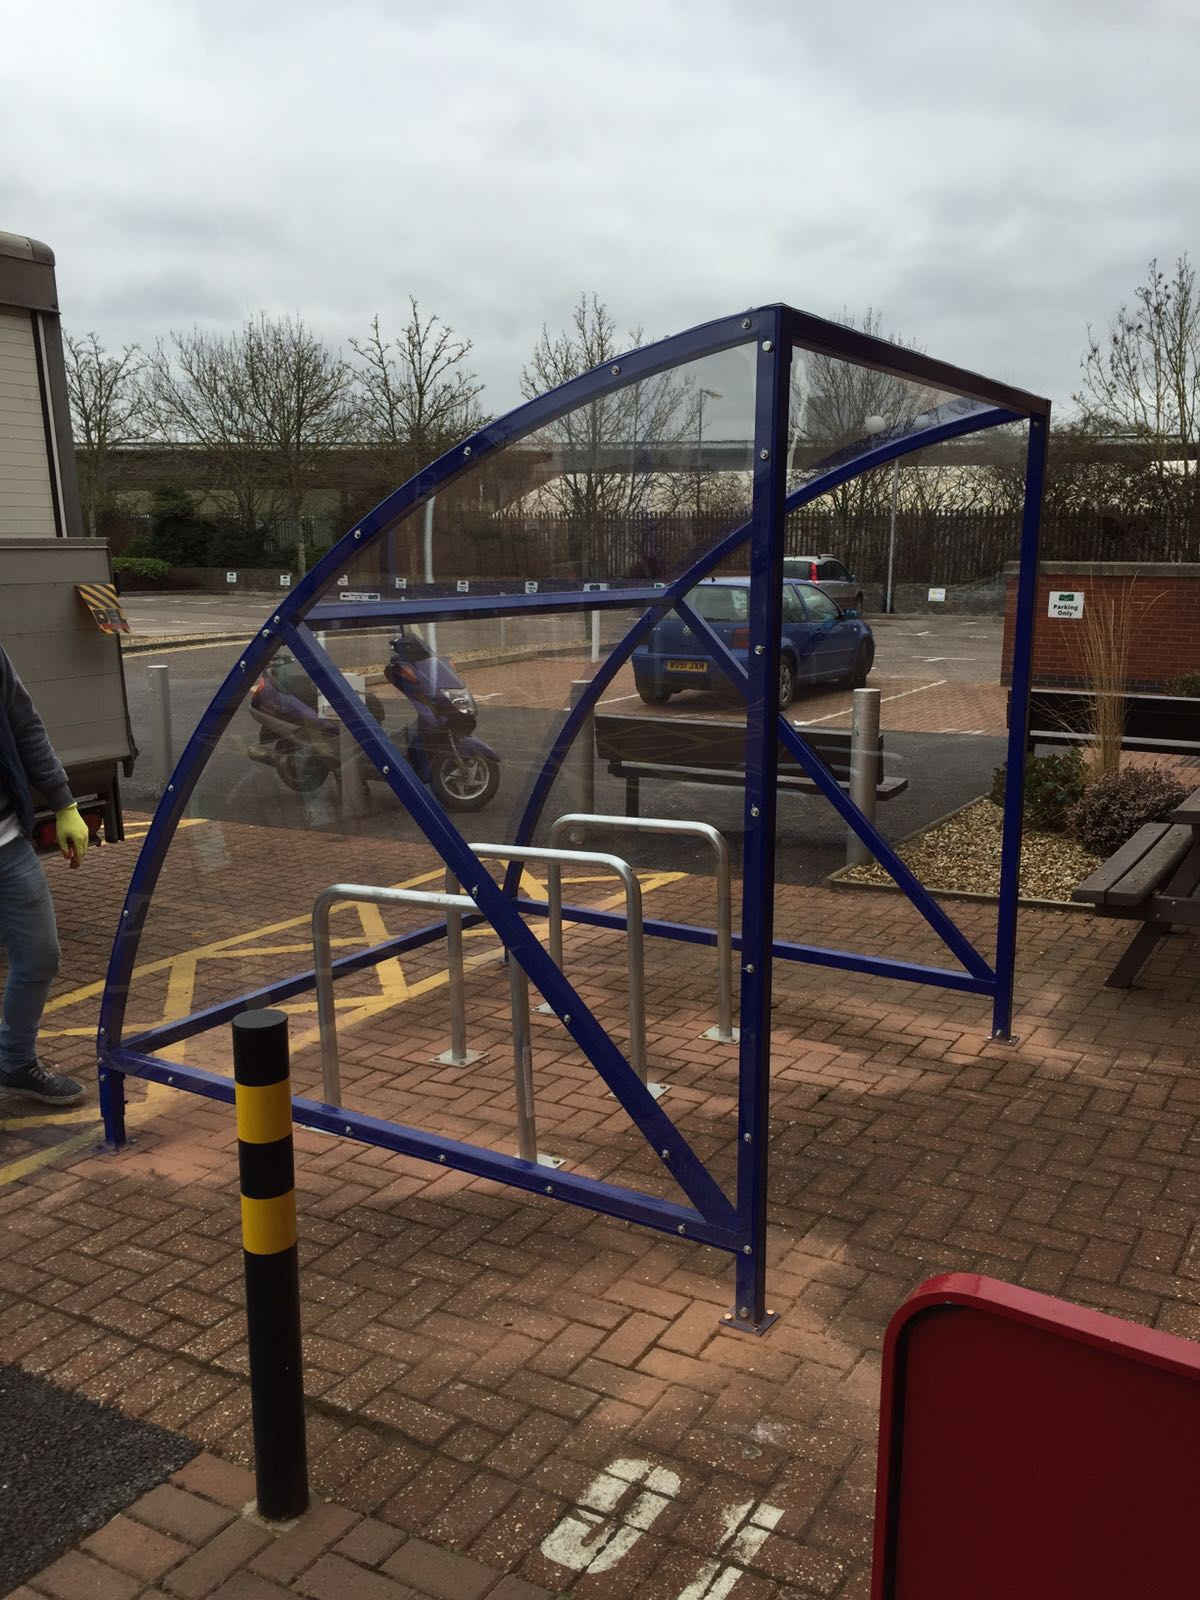 Small Bike Shelters : Mini bds cycle shelter